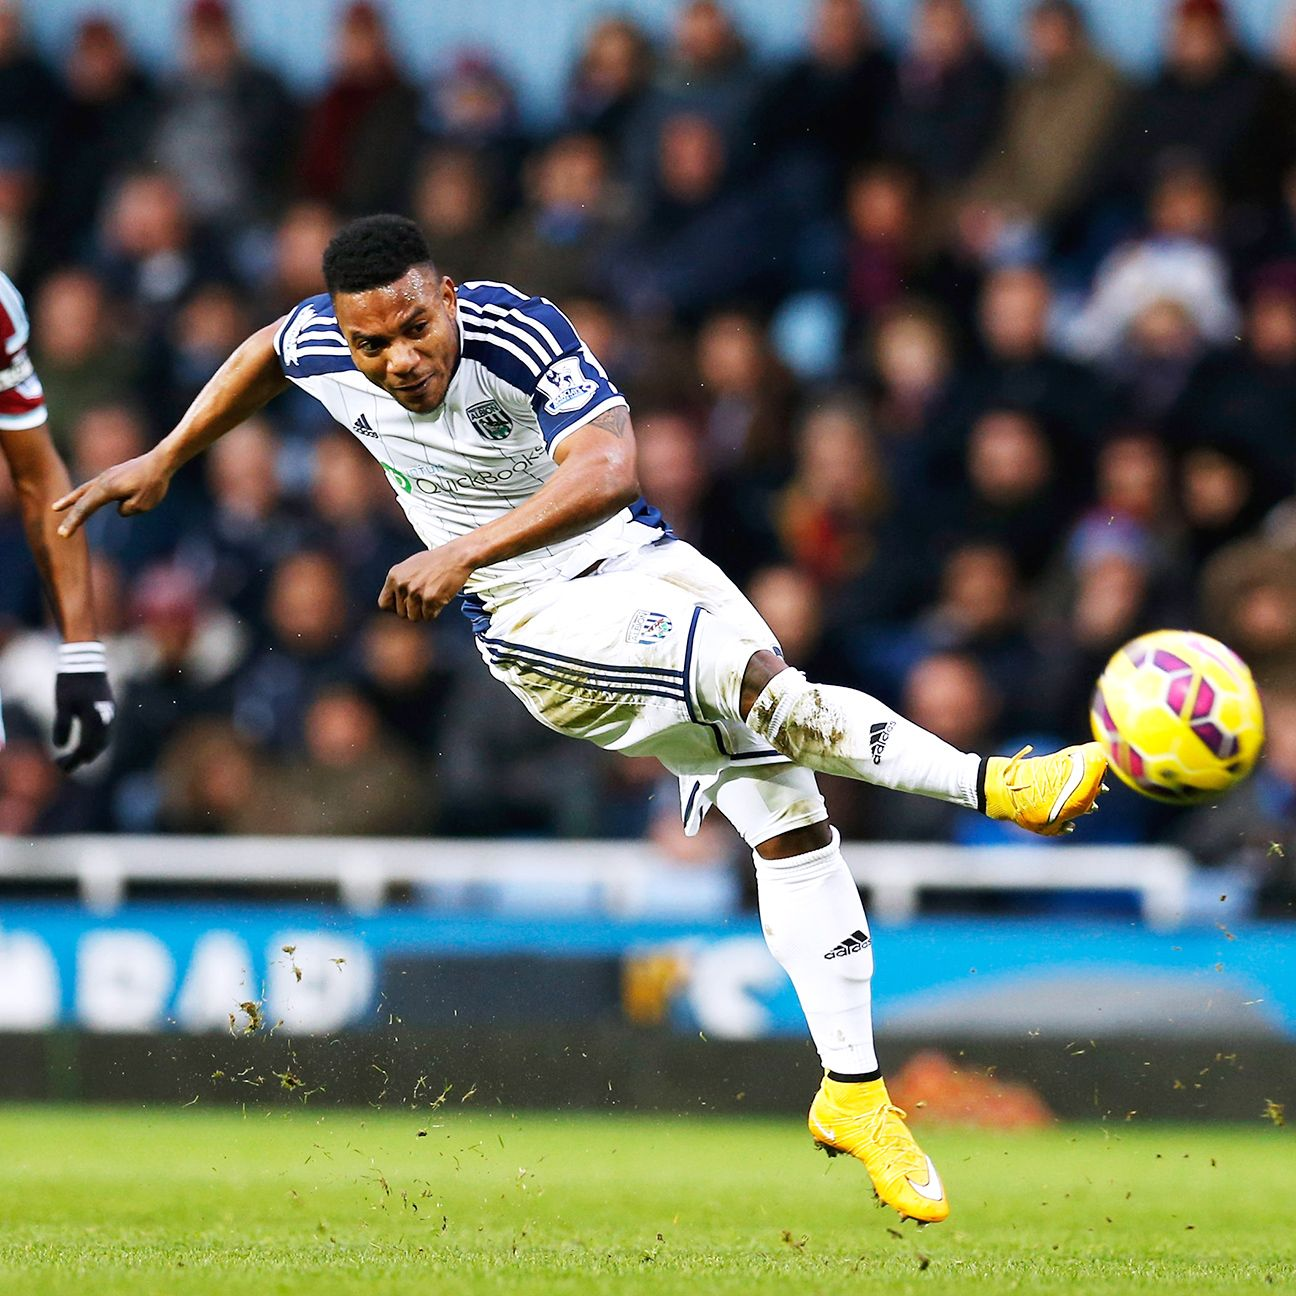 Stephane Sessegnon could prove to be a useful weapon out wide for new West Brom boss Tony Pulis.